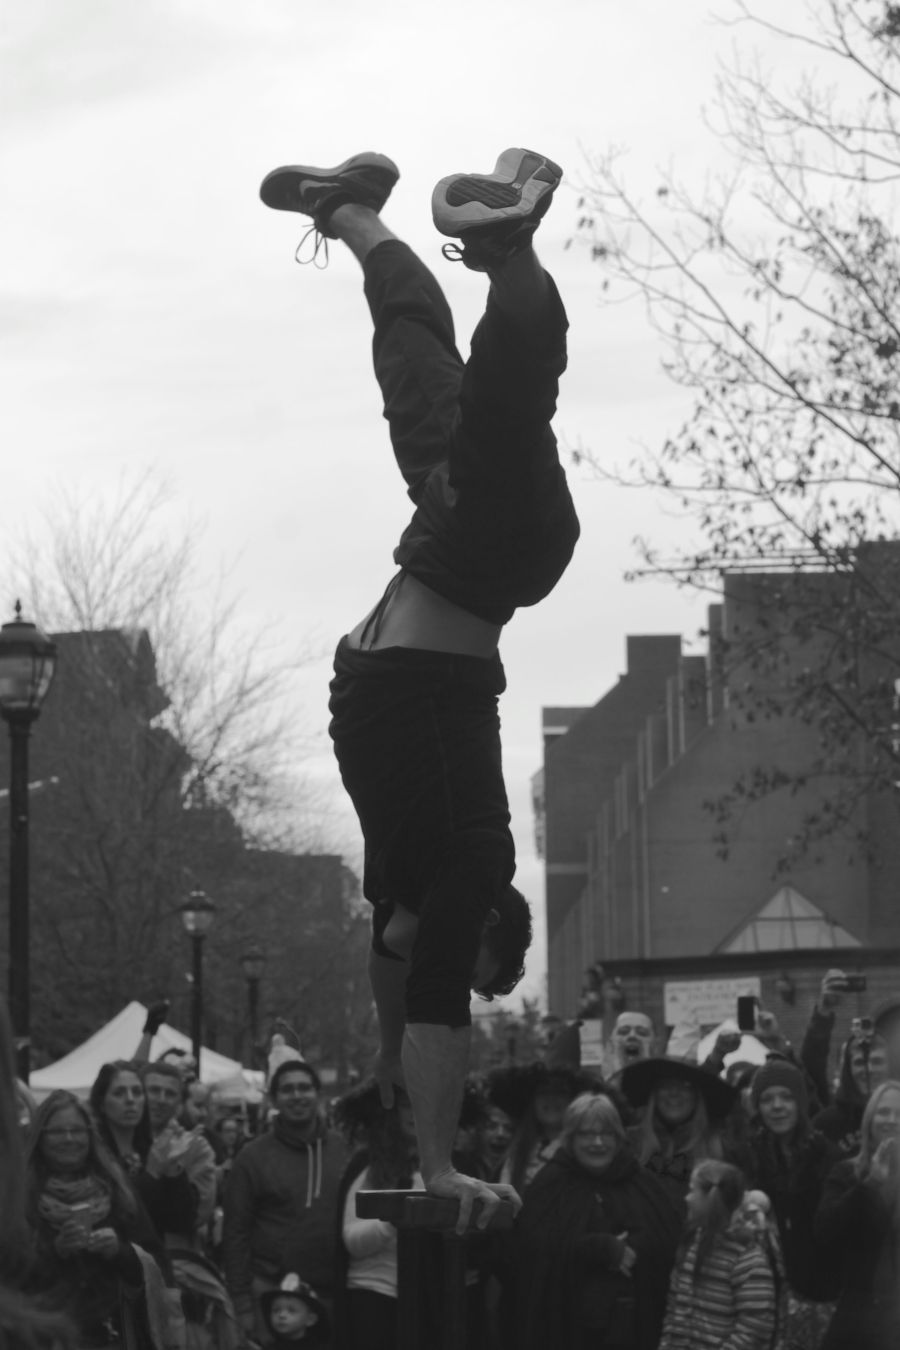 salem halloween october 31 2014 street performer hand stand